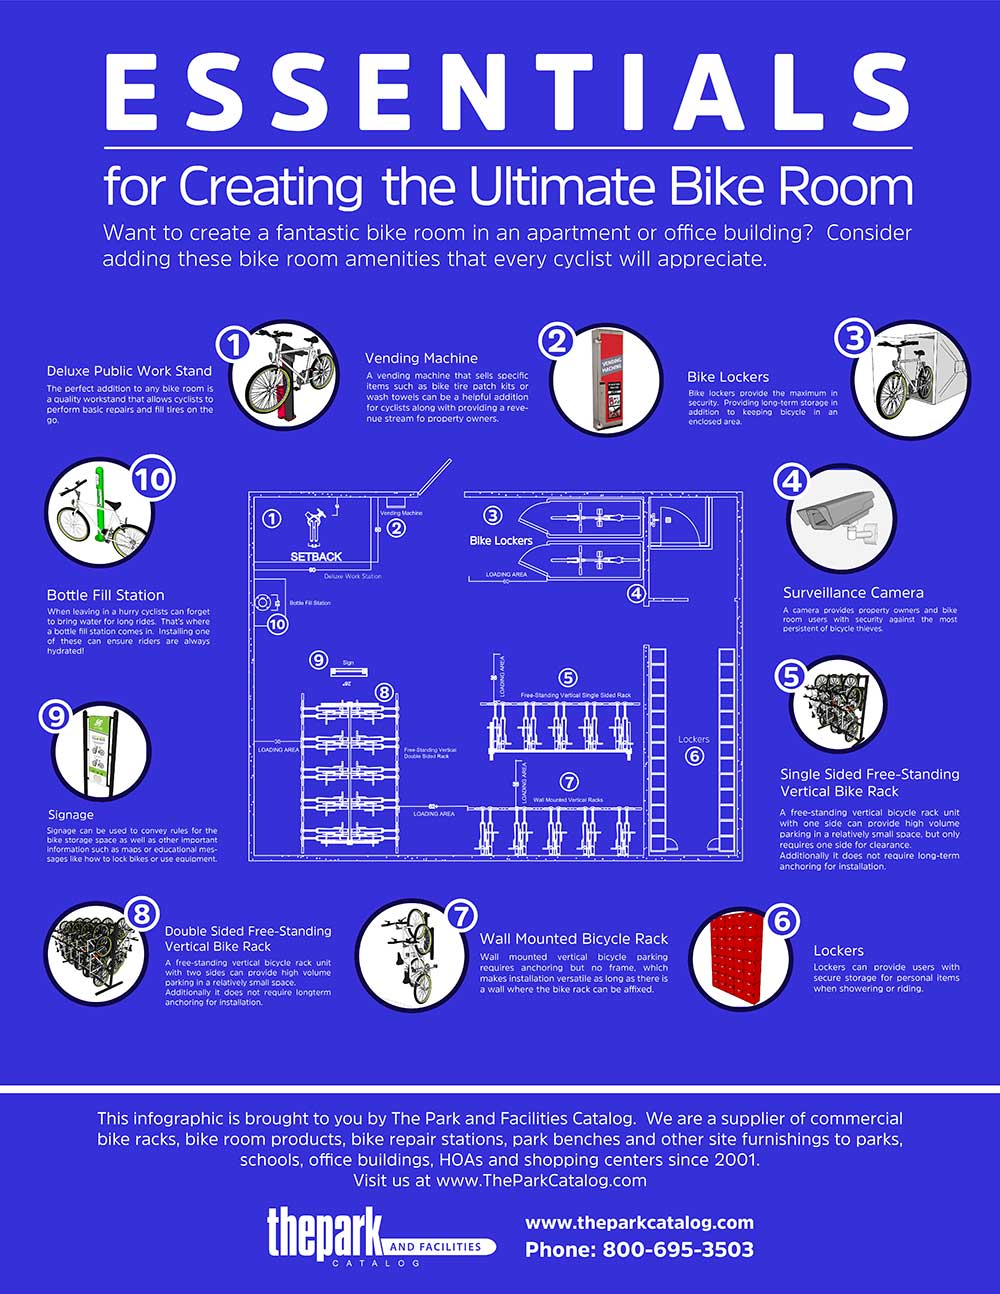 bike repair stations and other bike room amenities